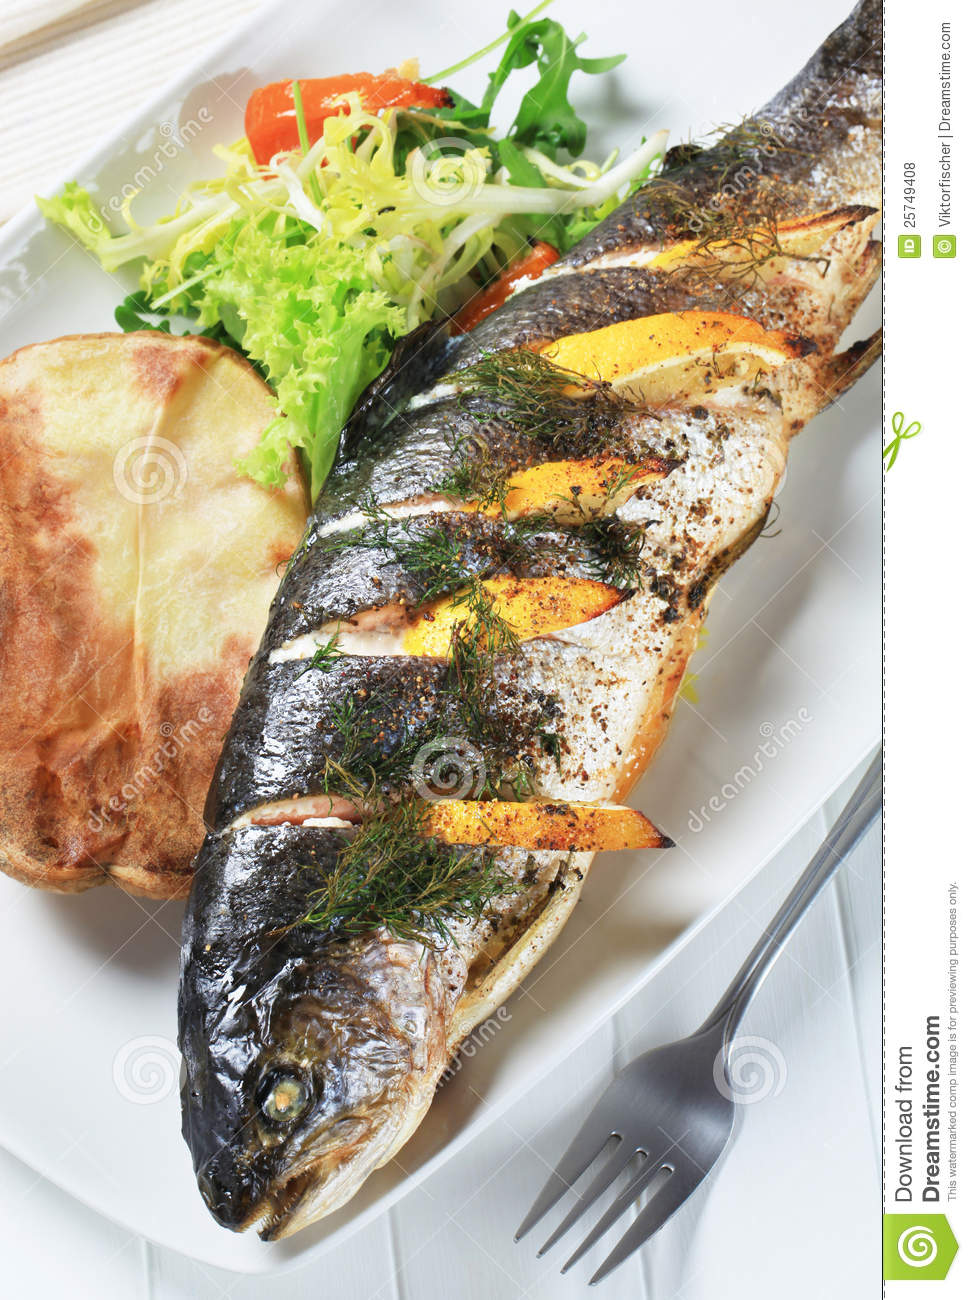 Lemon Dill Trout With Baked Potato Royalty Free Stock Photos - Image ...